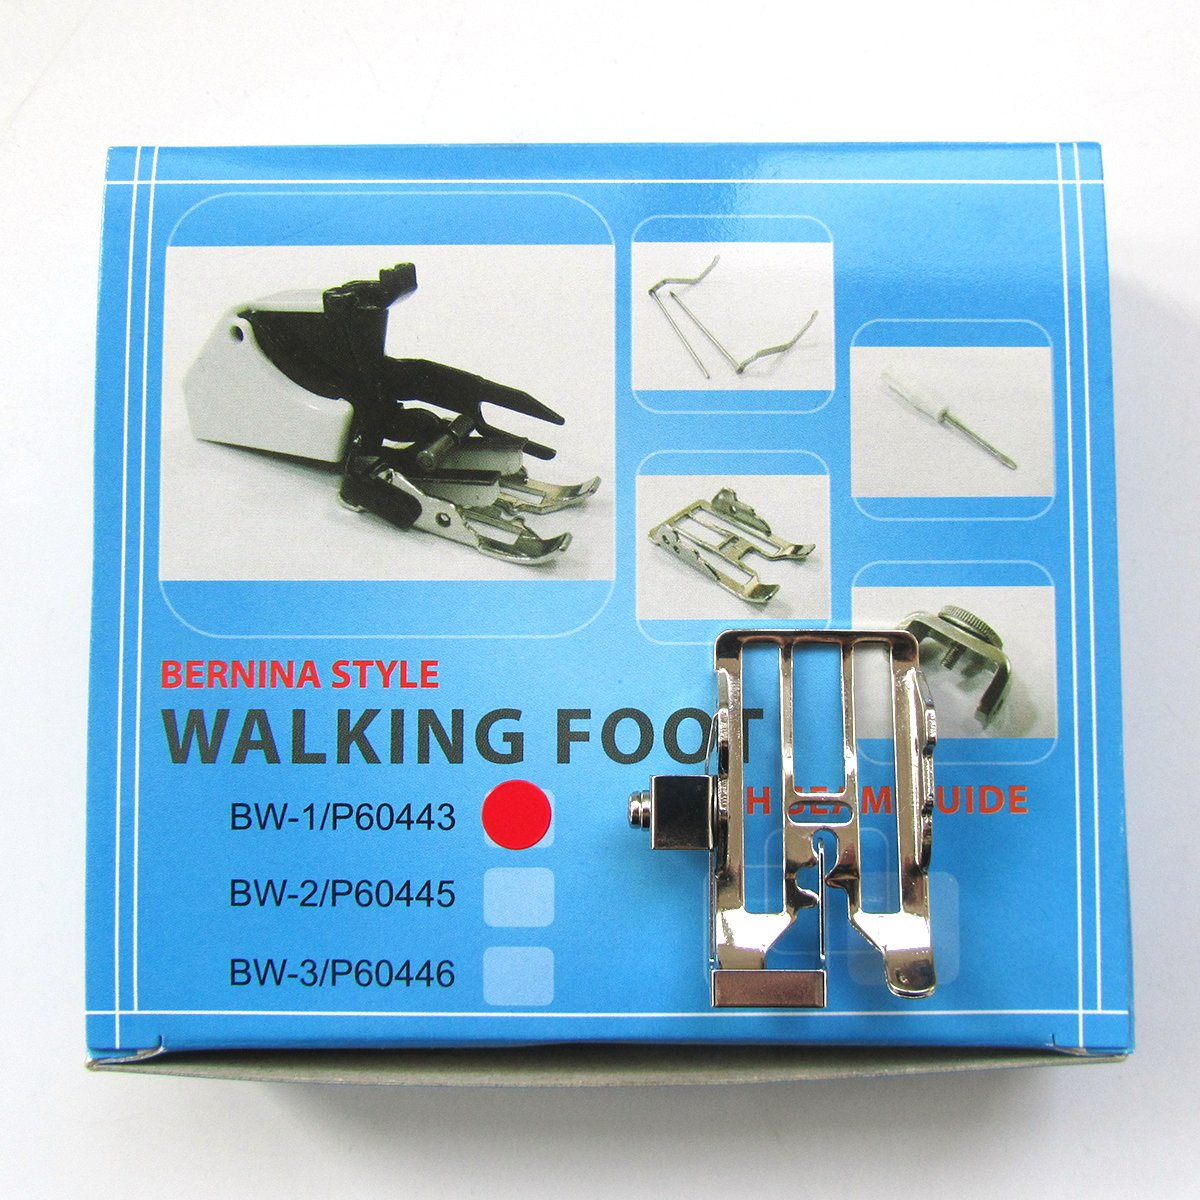 Kunpeng P60443D 1SET Three Changeable Sole Walking Foot + Seam Guide Bernina NEW STYLE Sewing Machine